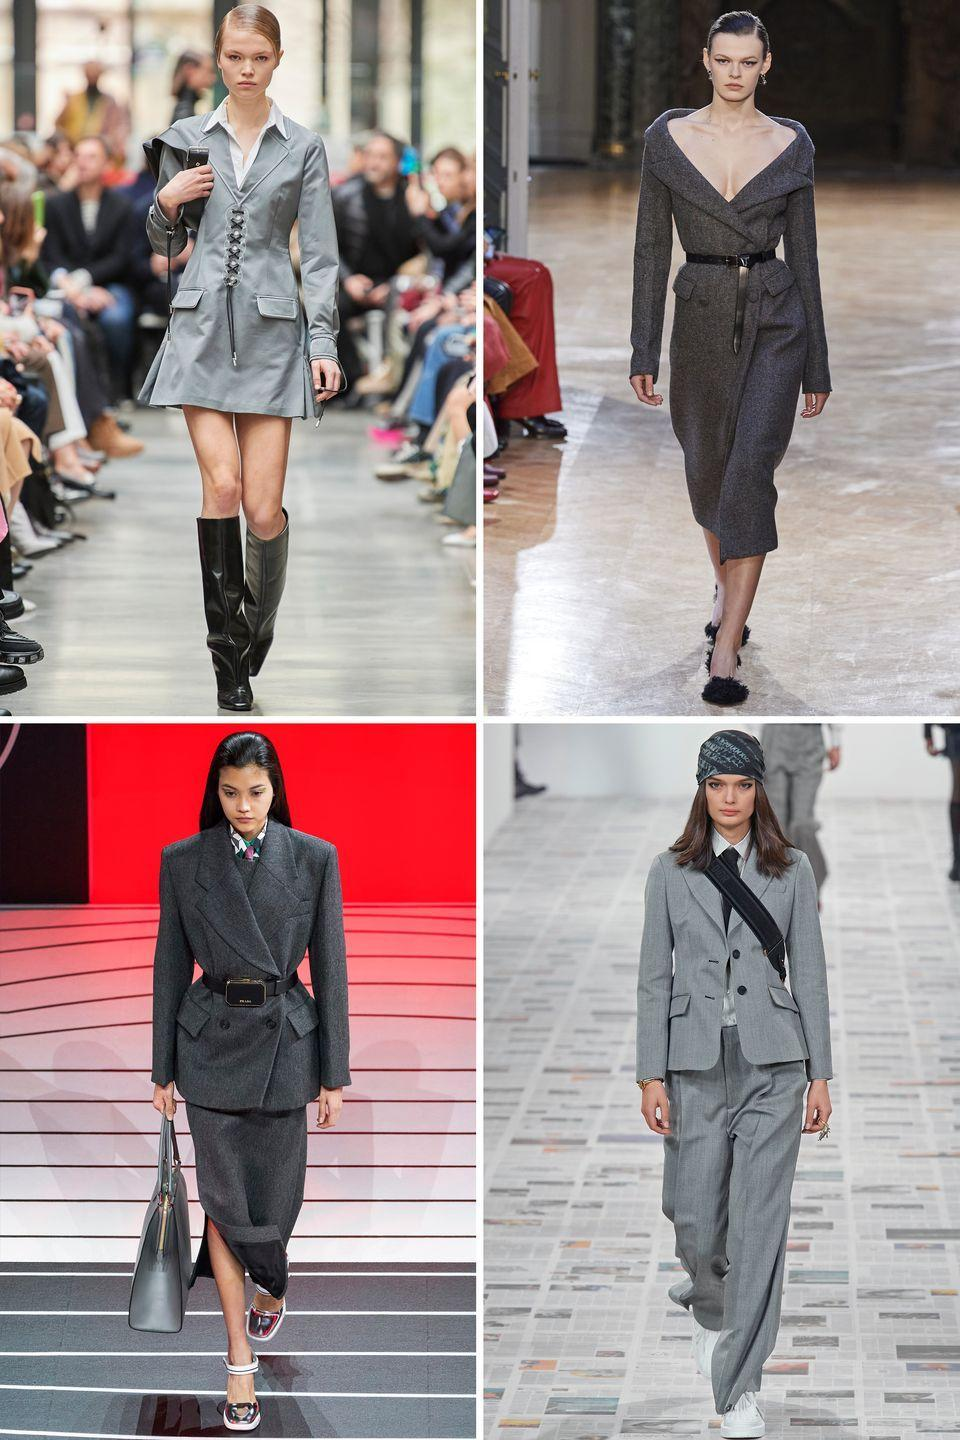 <p>Sleek and chic and not surprising at all, slate gray popped up on countless fall 2020 runways, from New York to Milan to Paris. Whether you go for a blazer, sweater, or structured dress form, this is one way to stand out and dress for a day in the city.</p><p><em>Clockwise from top left: Coperni, Altuzarra, Christian Dior, Prada</em></p>